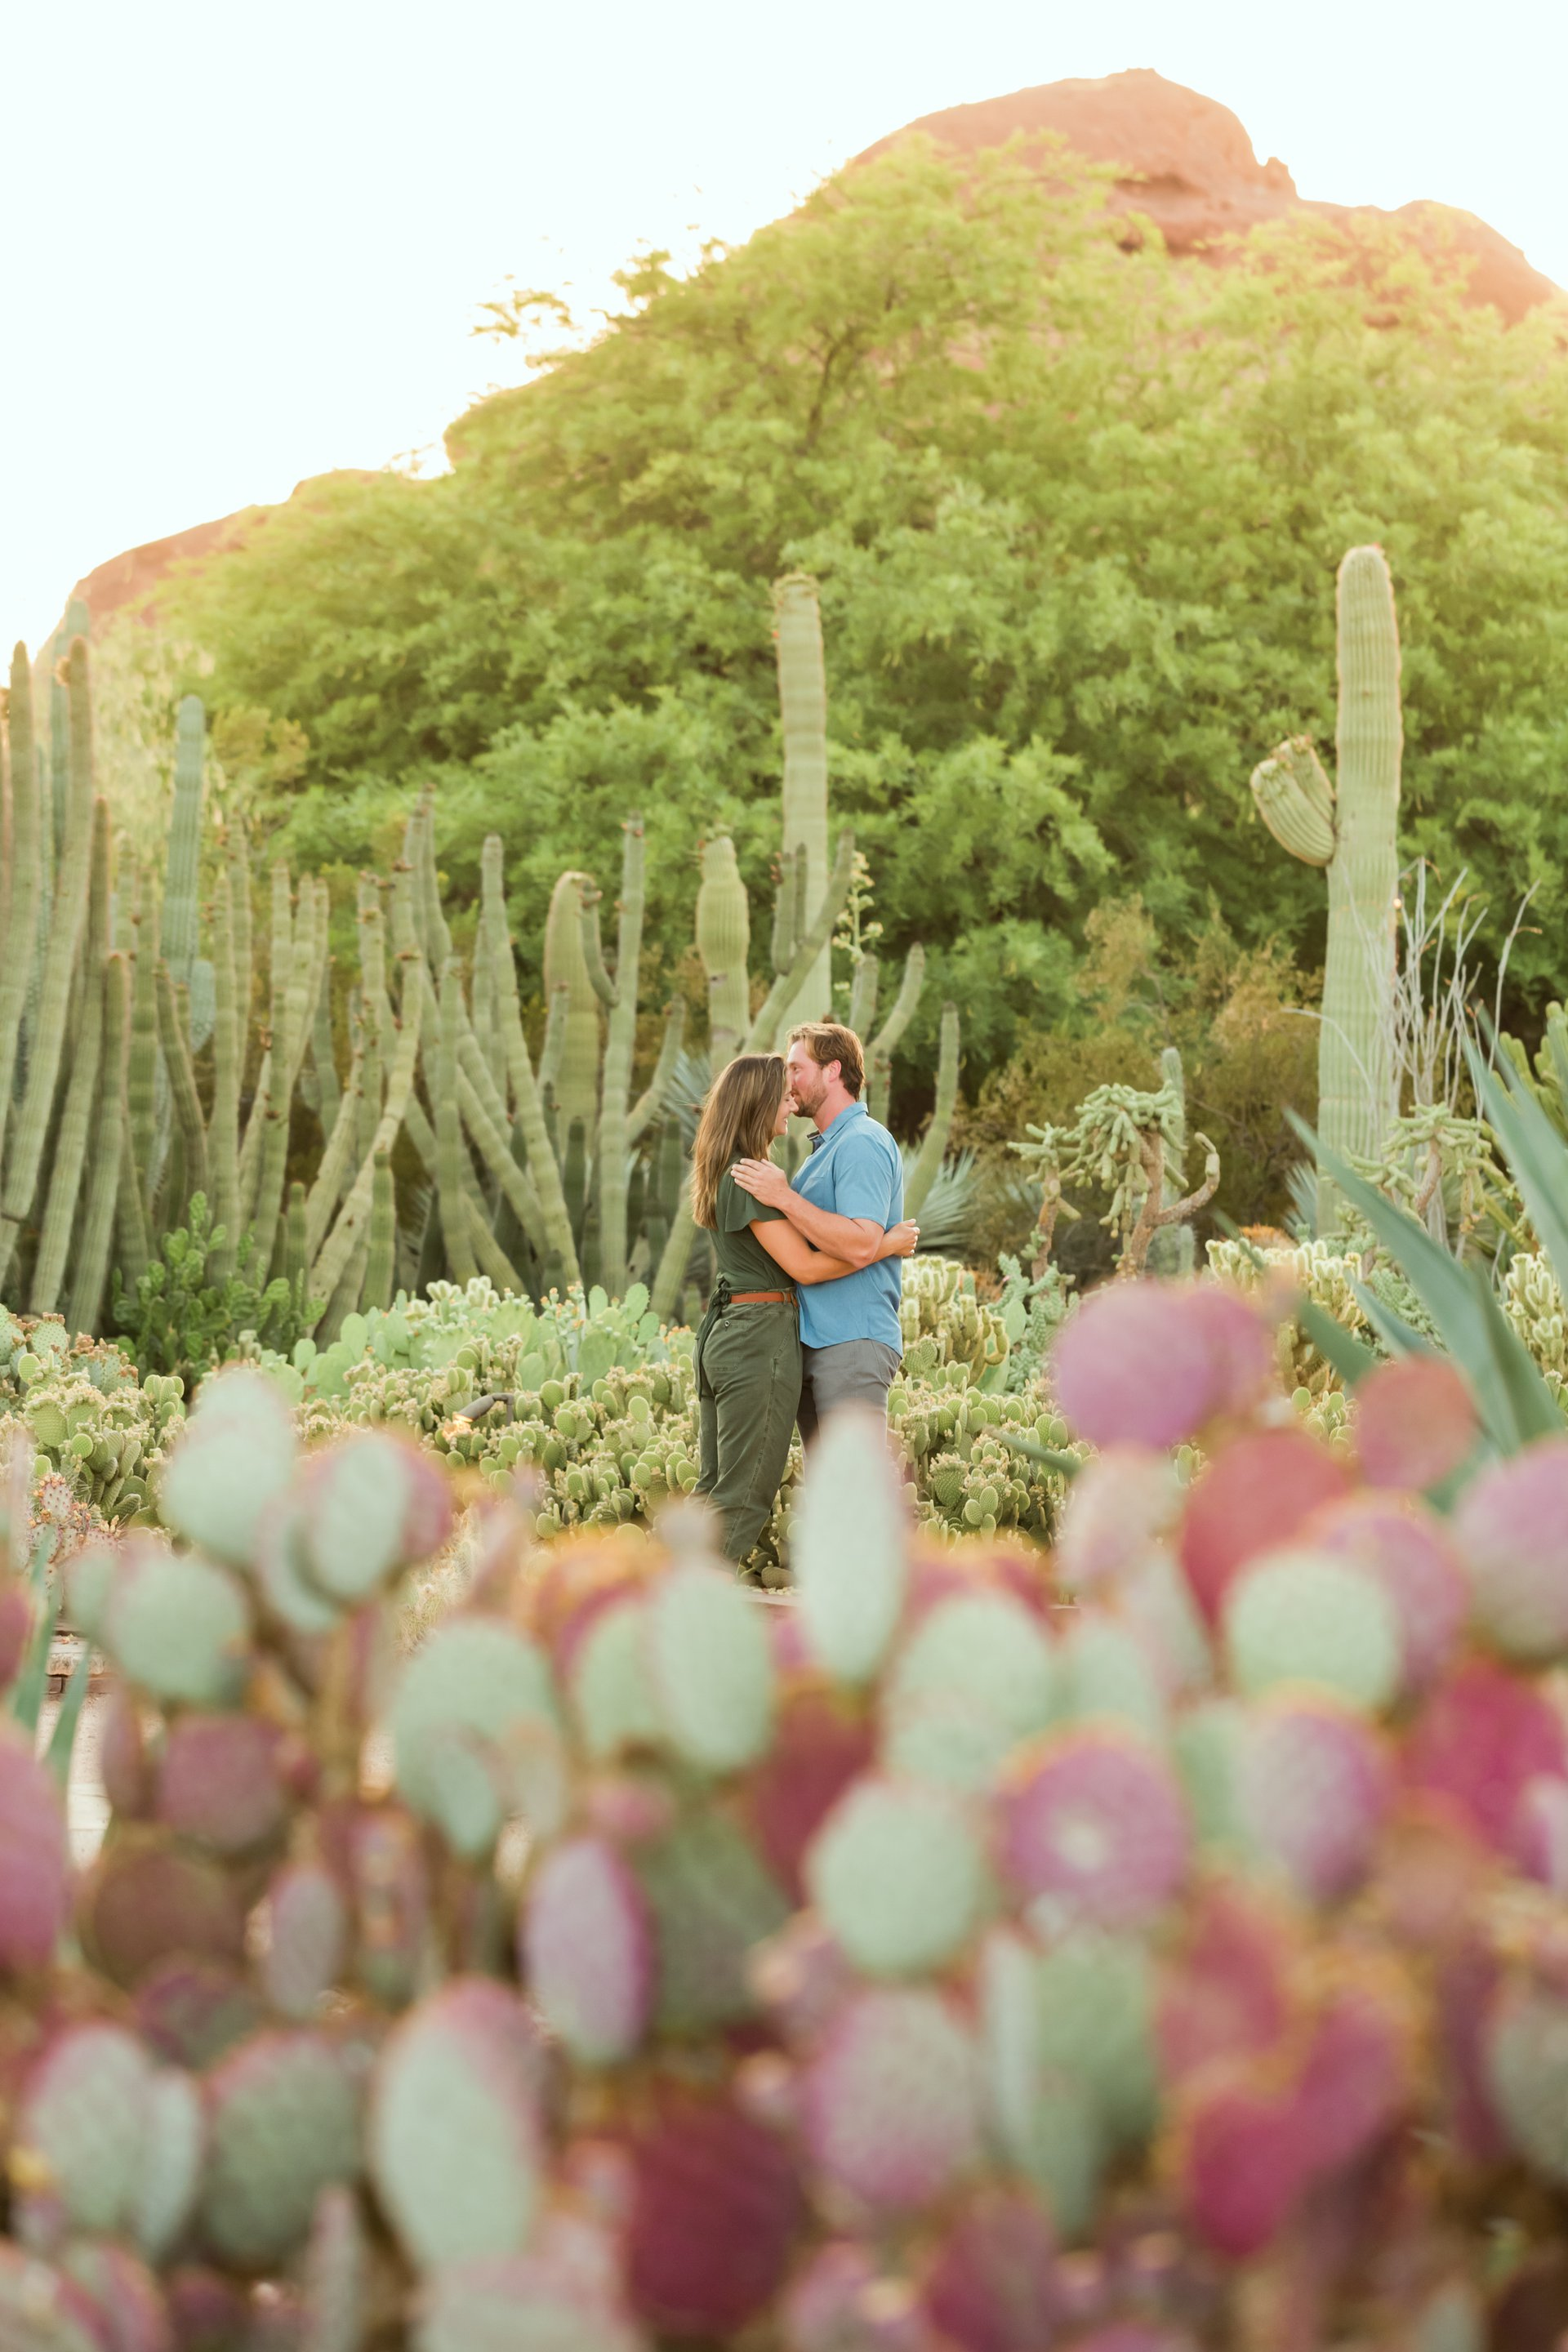 Scottsdale-United States-travel-story-Flytographer-11